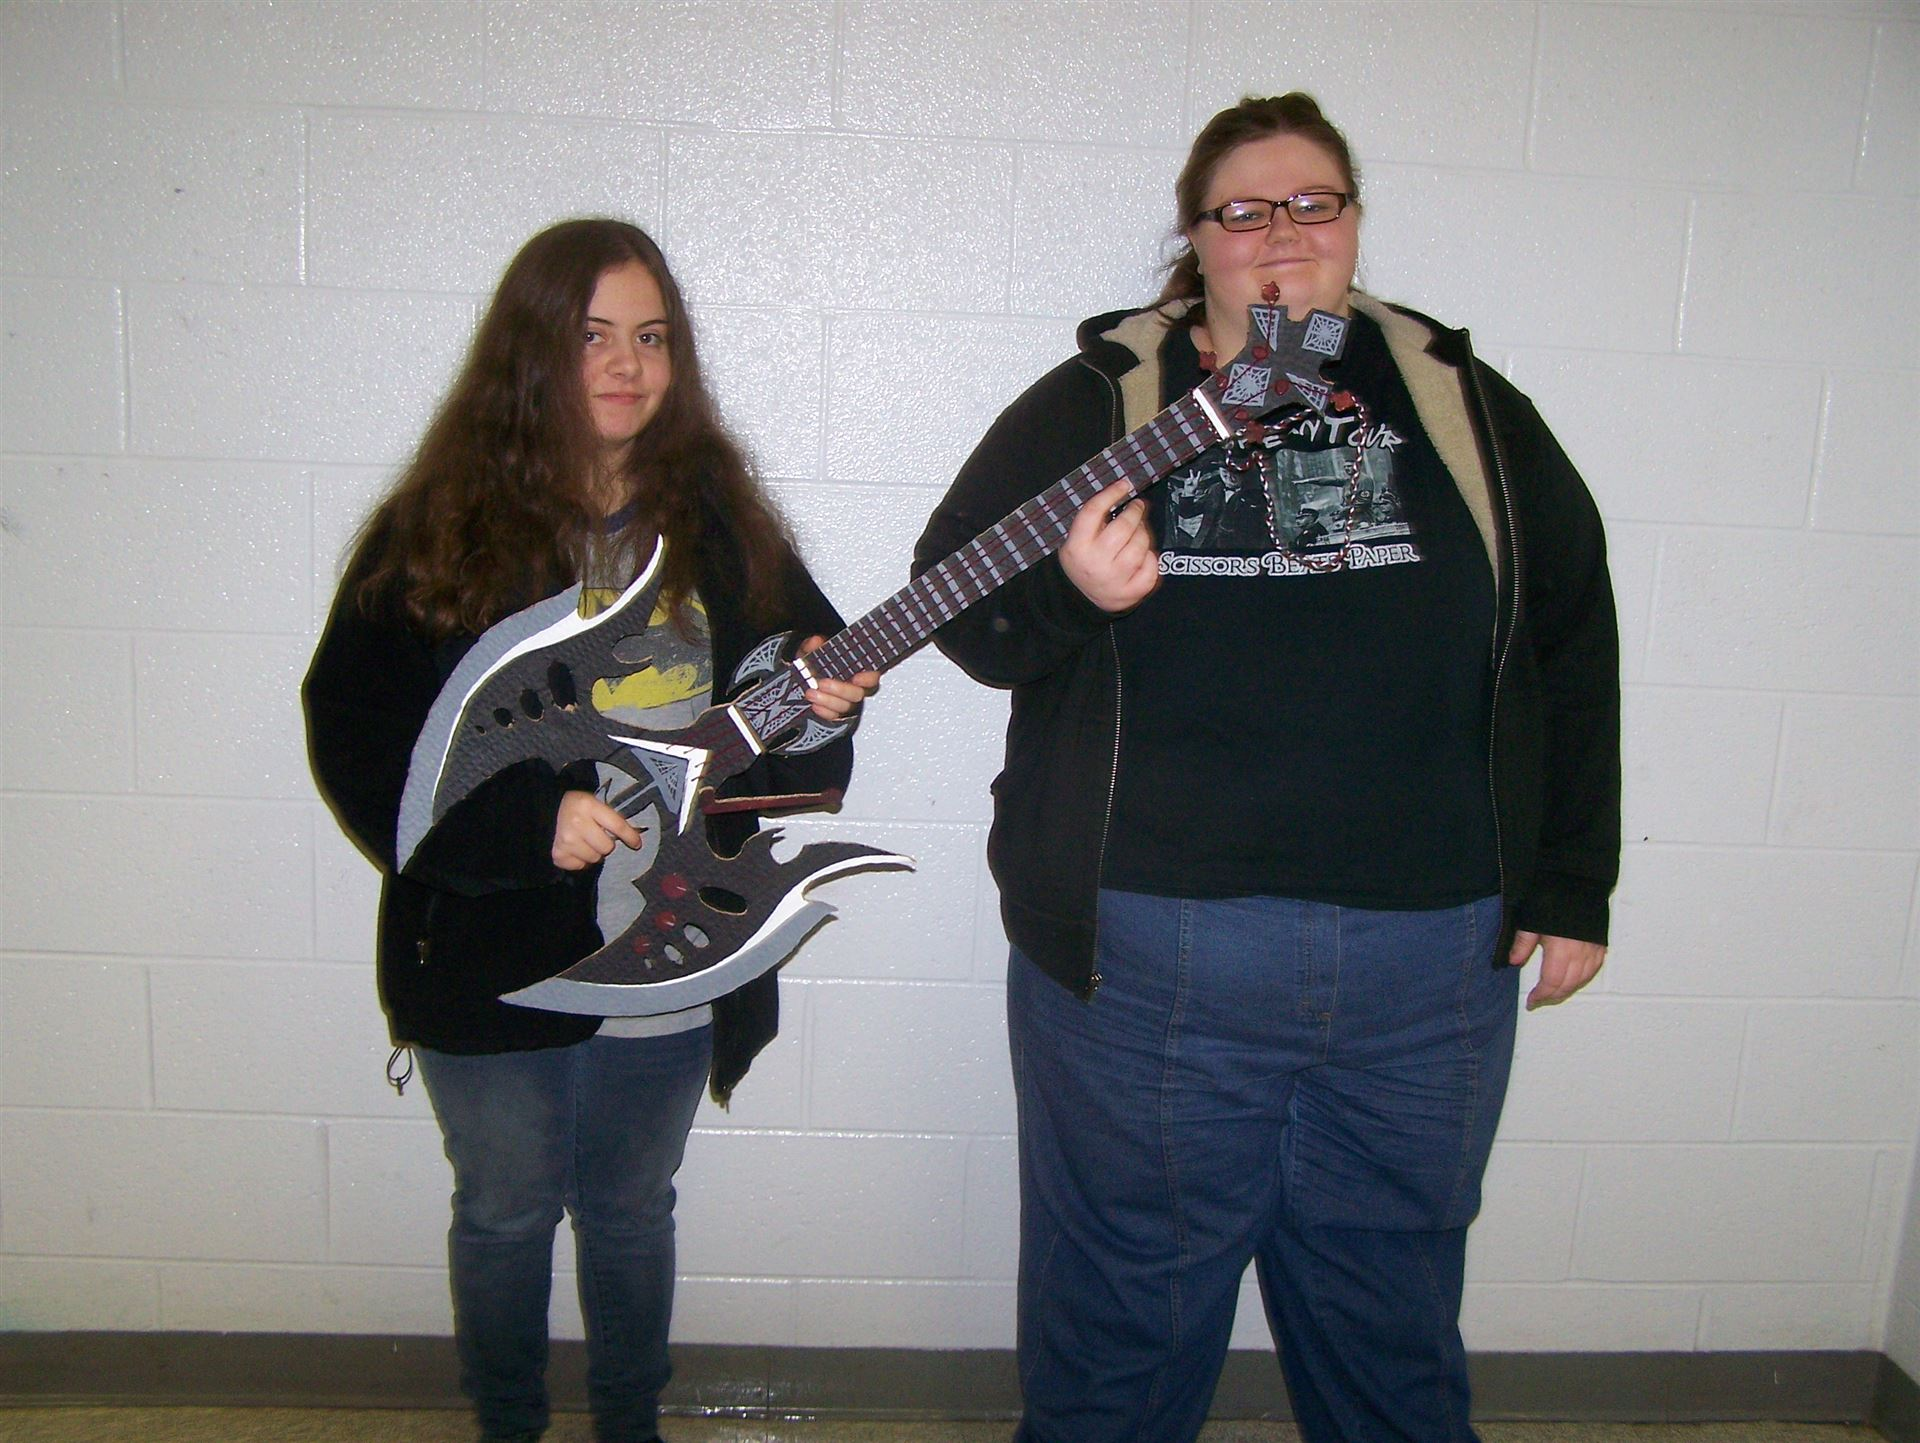 Shelby Brindley and Gayle Taylor show their guitar.